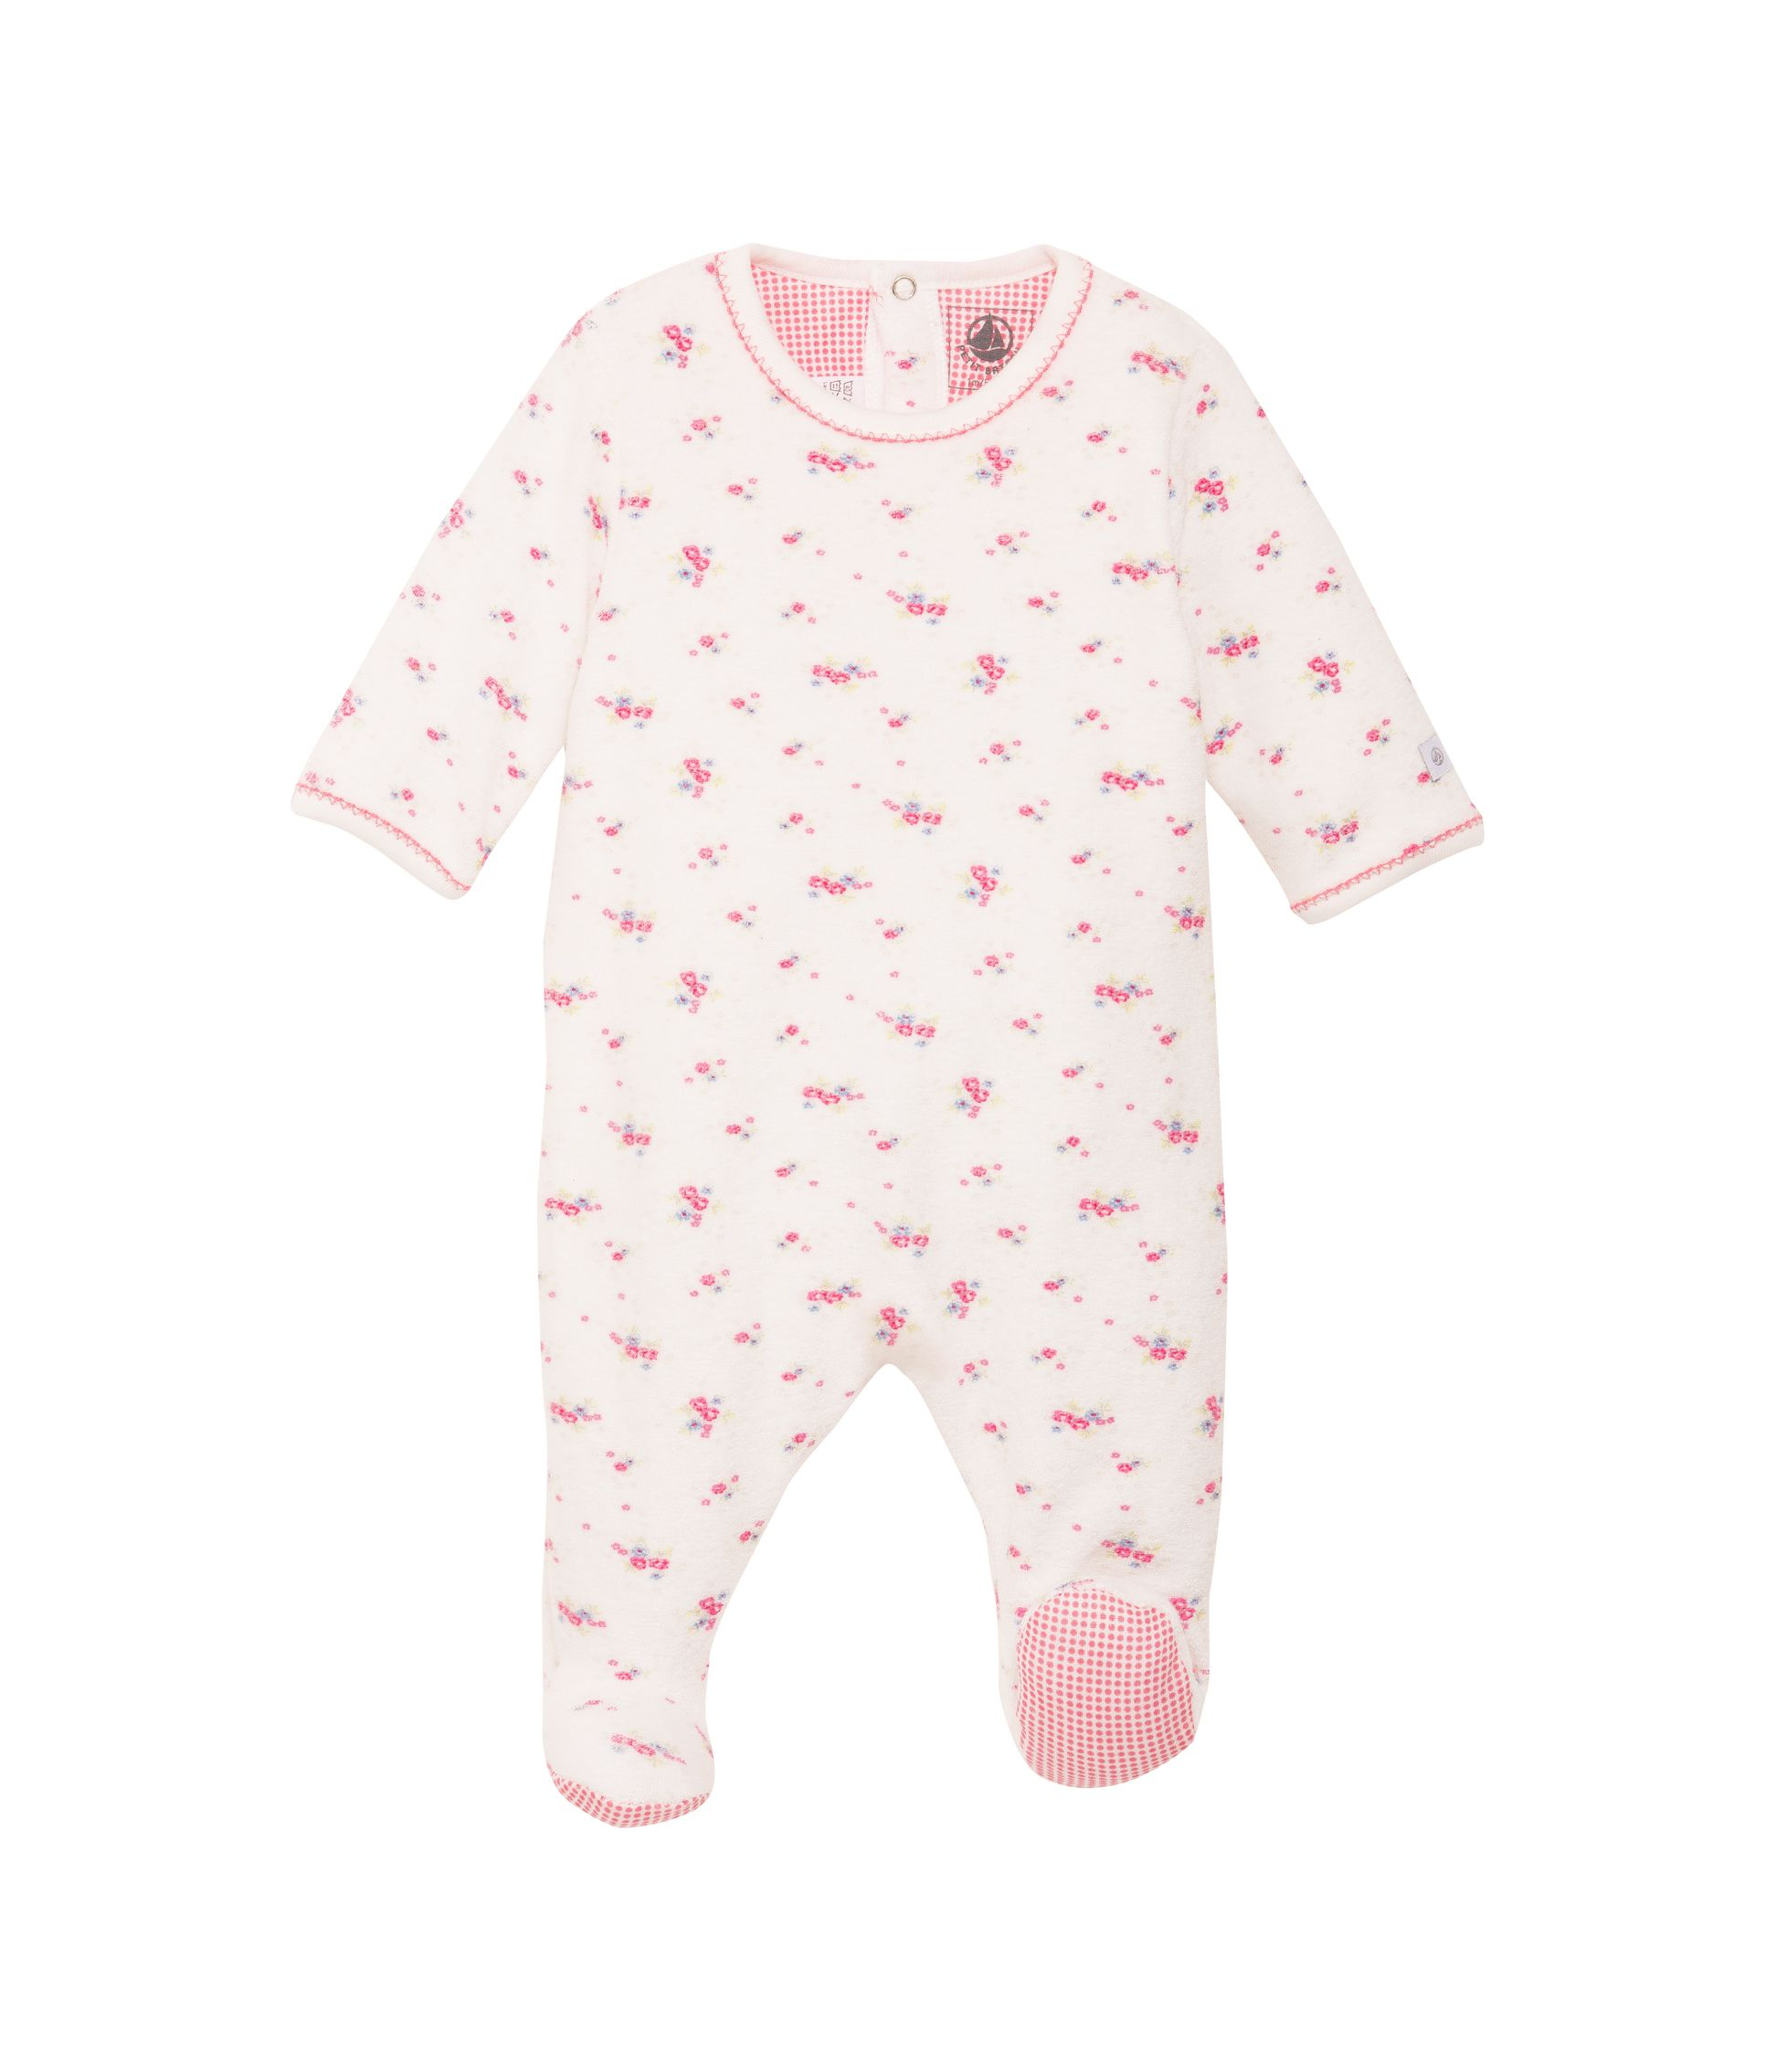 Baby girls towelling sleepsuit